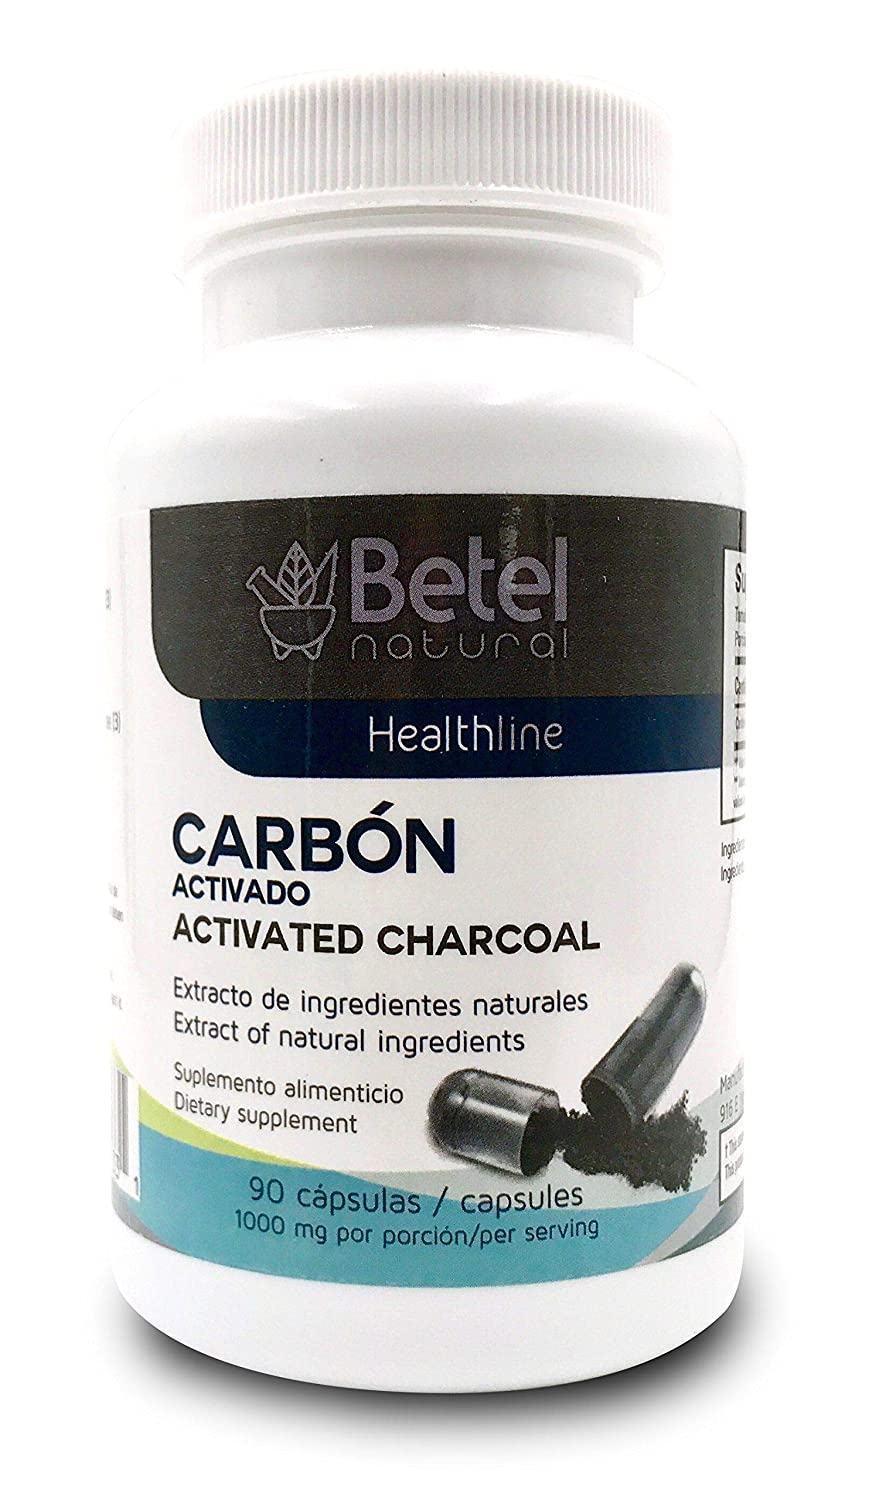 Amazon.com: Carbon Activado Capsulas - Activated Charcoal Betel Natural 90 Capsules: Health & Personal Care